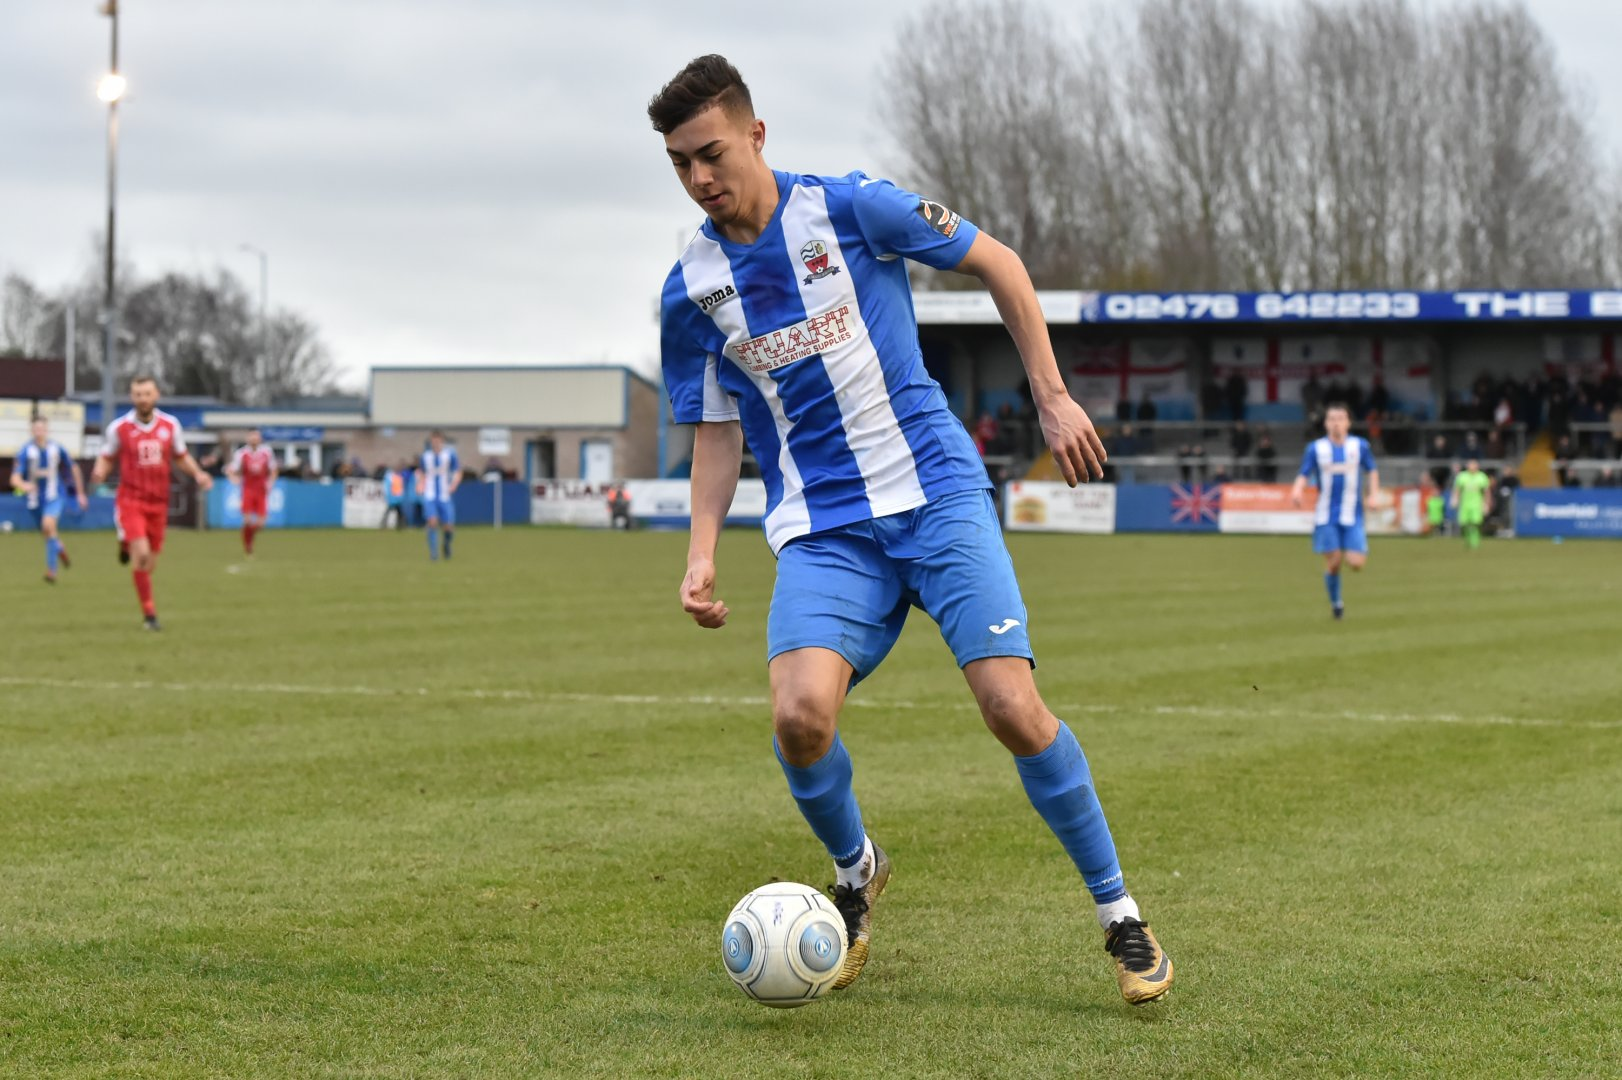 Tyler Allen will train at Rovers this week PIC CREDIT: Simon Kimber Photography